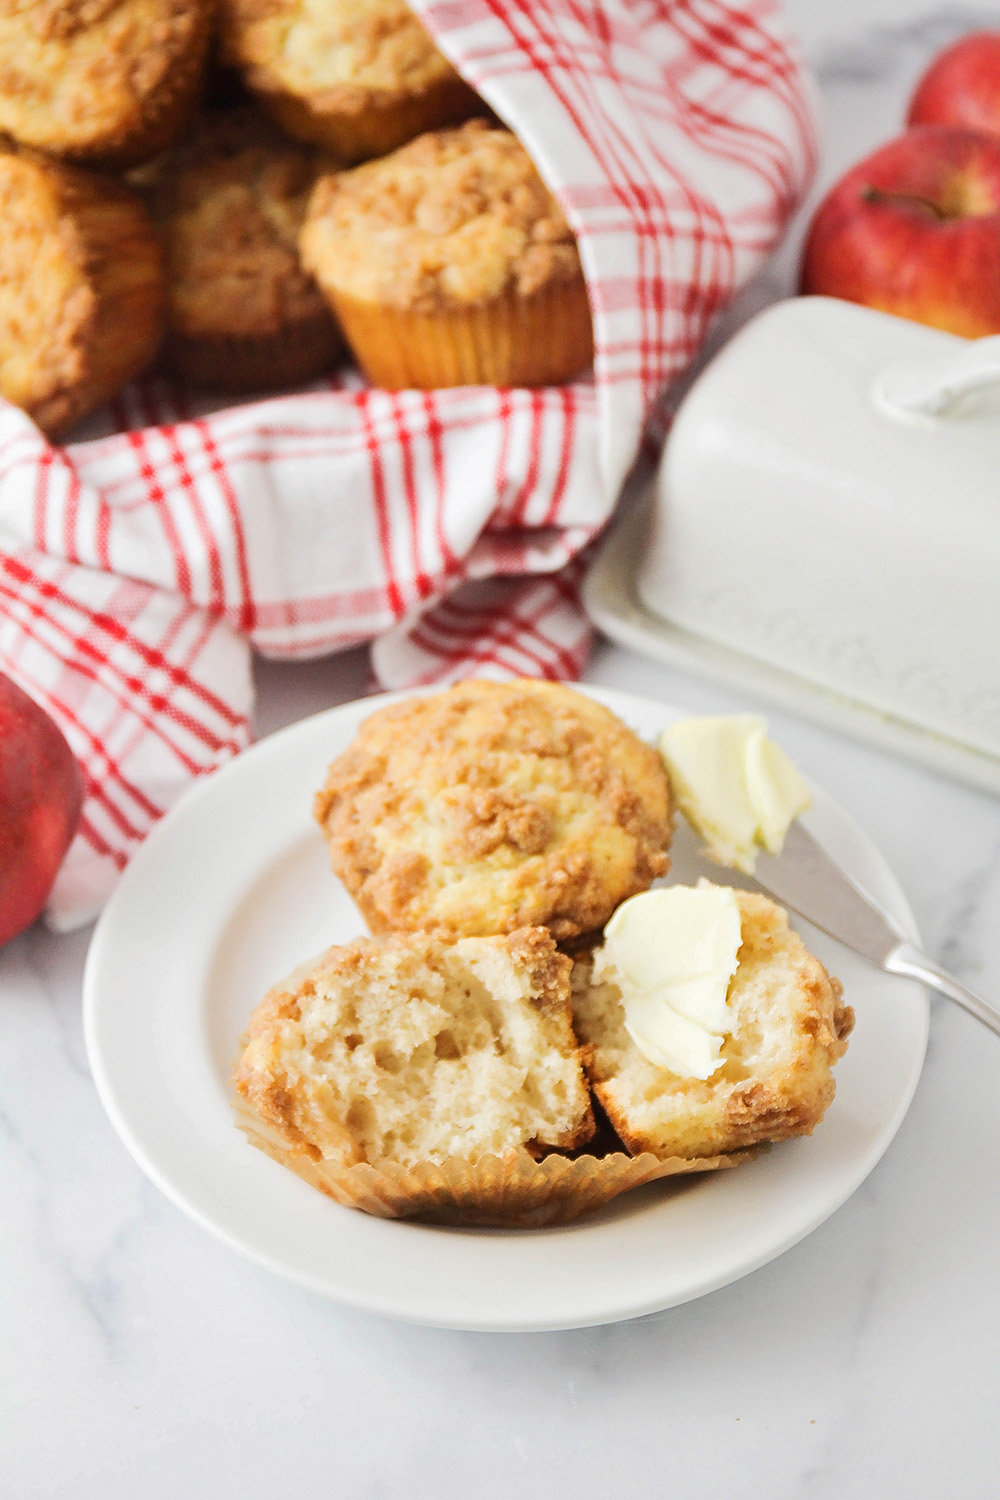 These apple cinnamon streusel muffins are full of delicious fall flavors, with the perfect tender crumb!